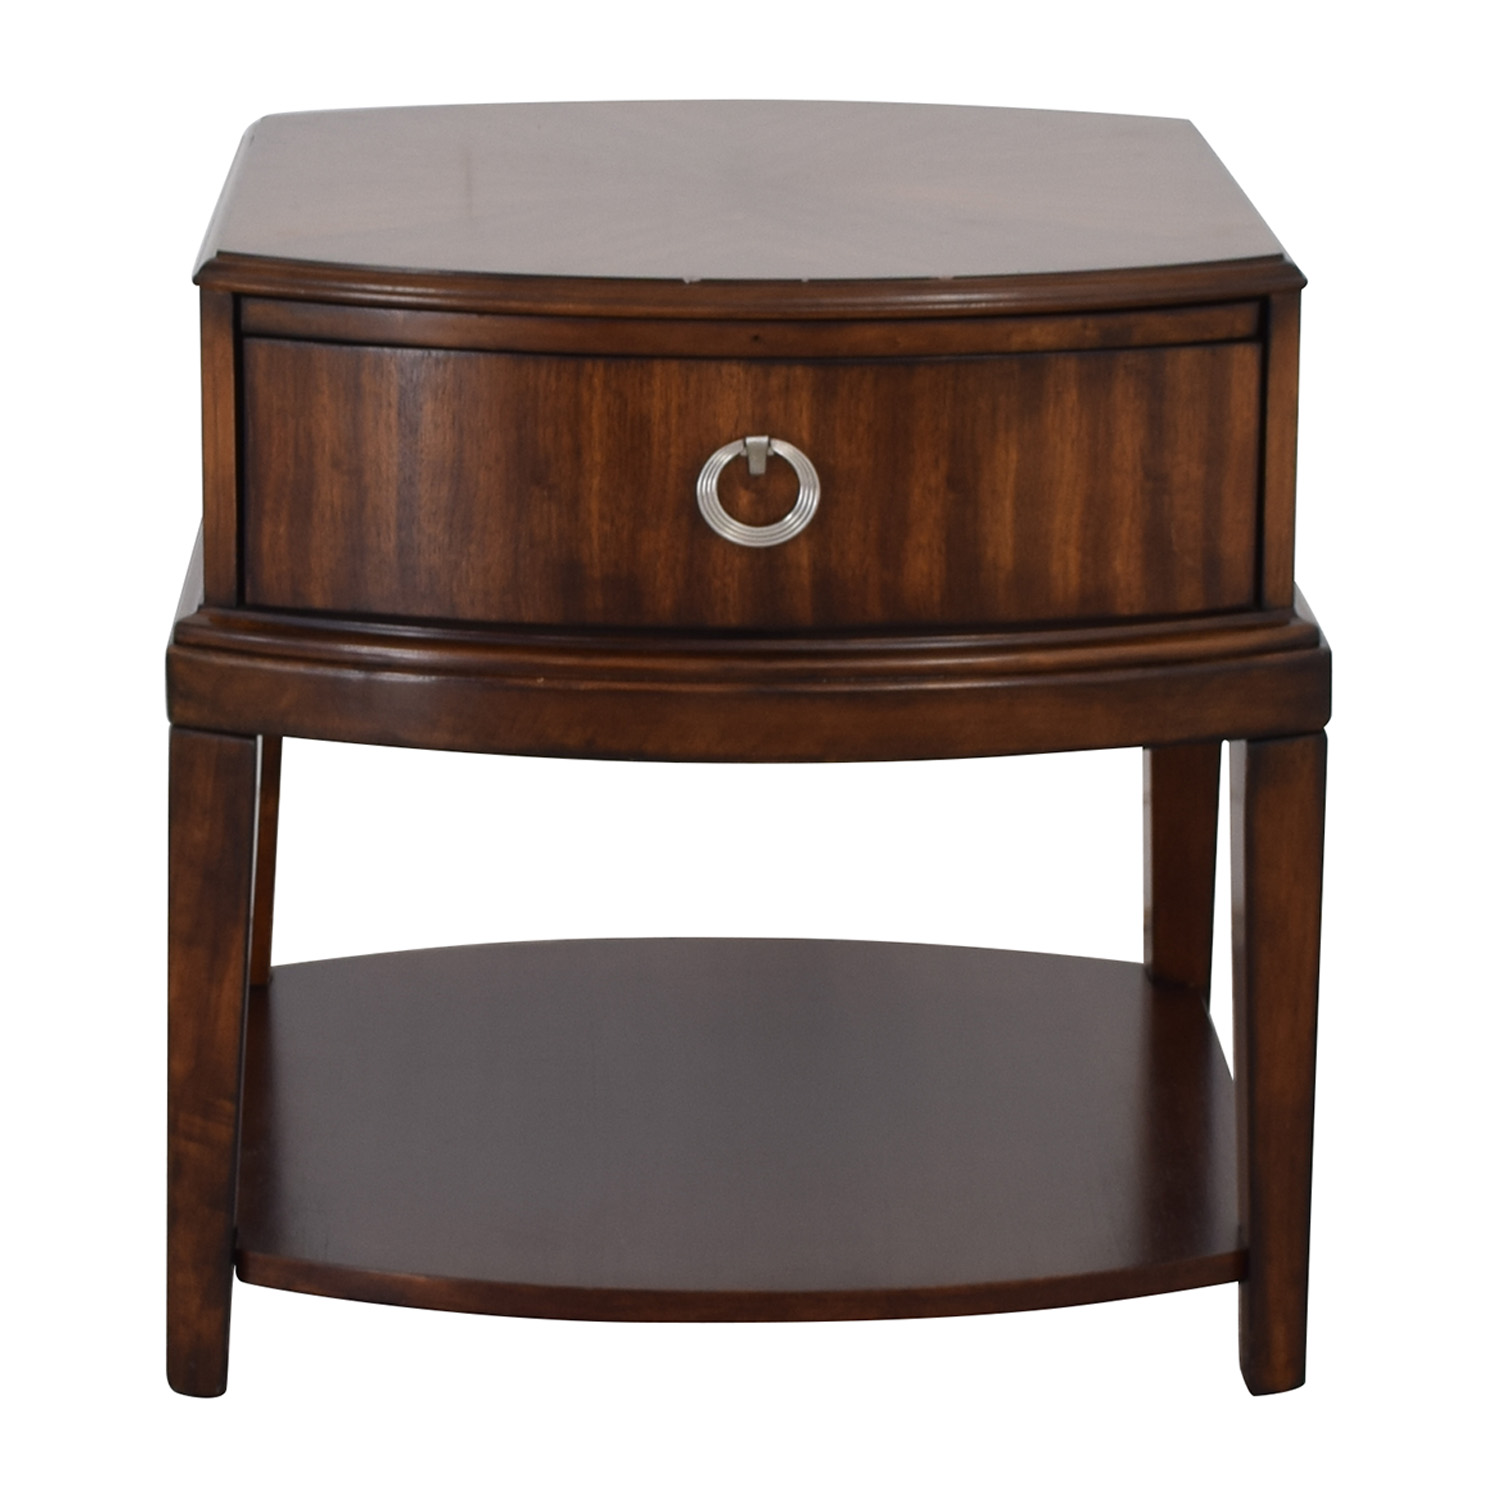 Havertys Havertys Wood Single Drawer End Table coupon